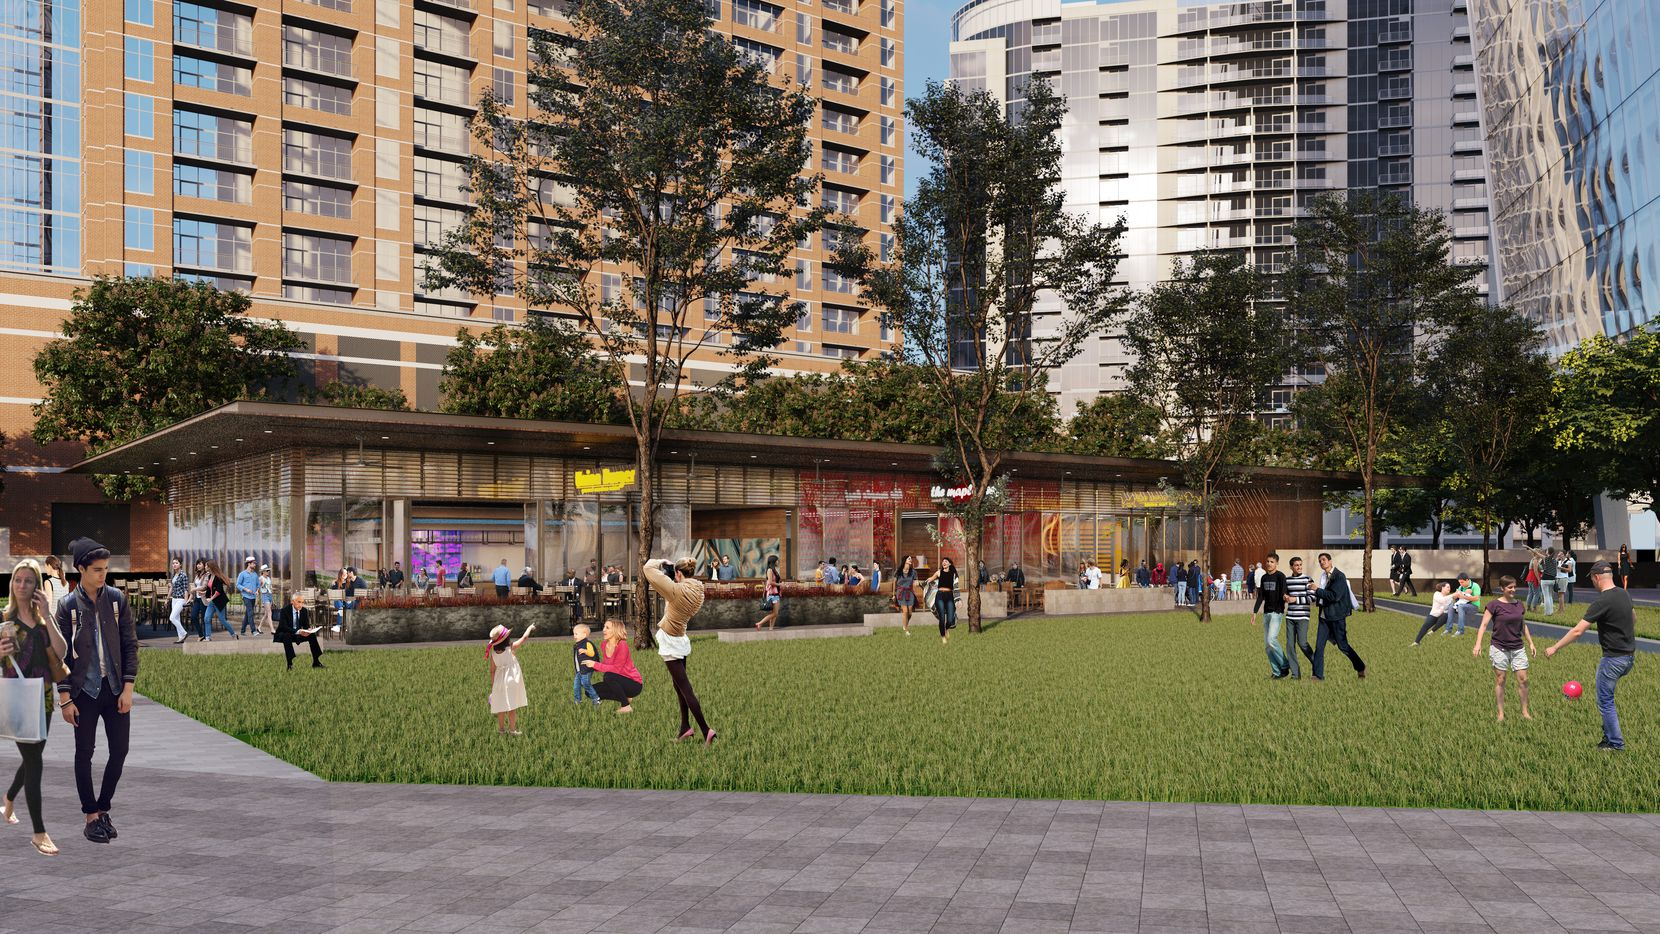 The 23Springs project includes a half acre park.